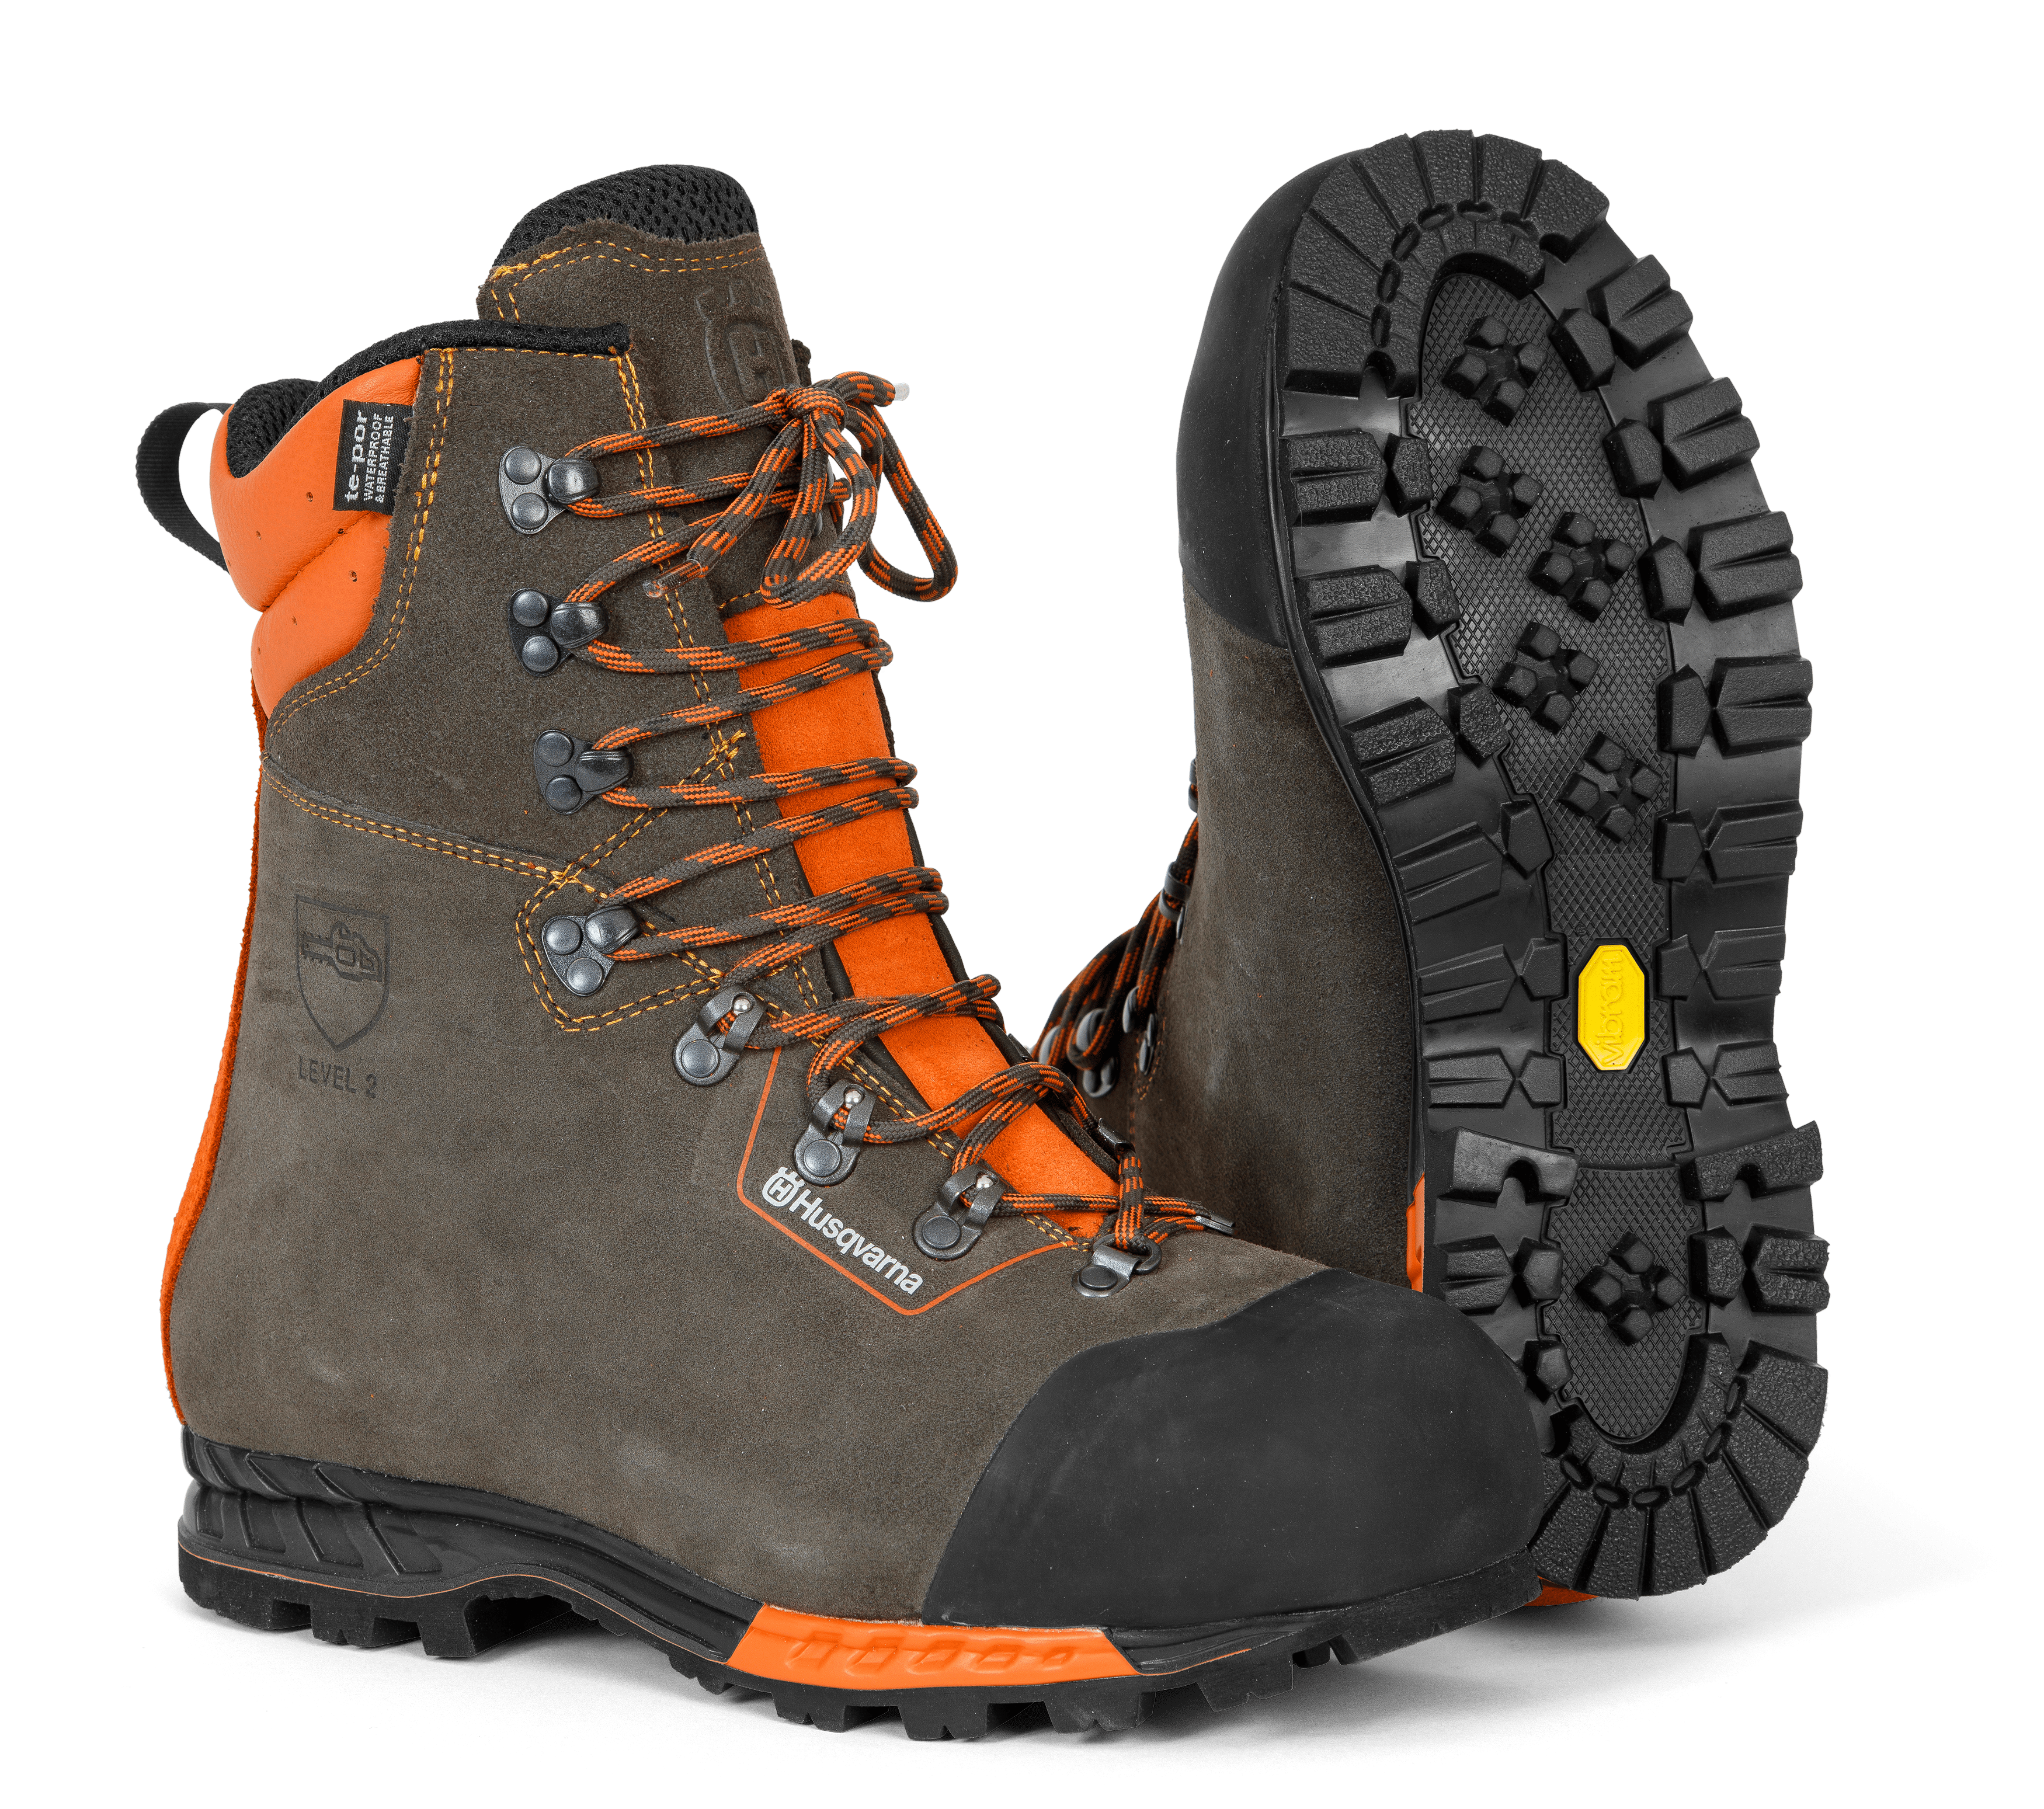 HUSQVARNA Protective leather boots with saw protection, Functional 24 - V-Pro Power Equipment